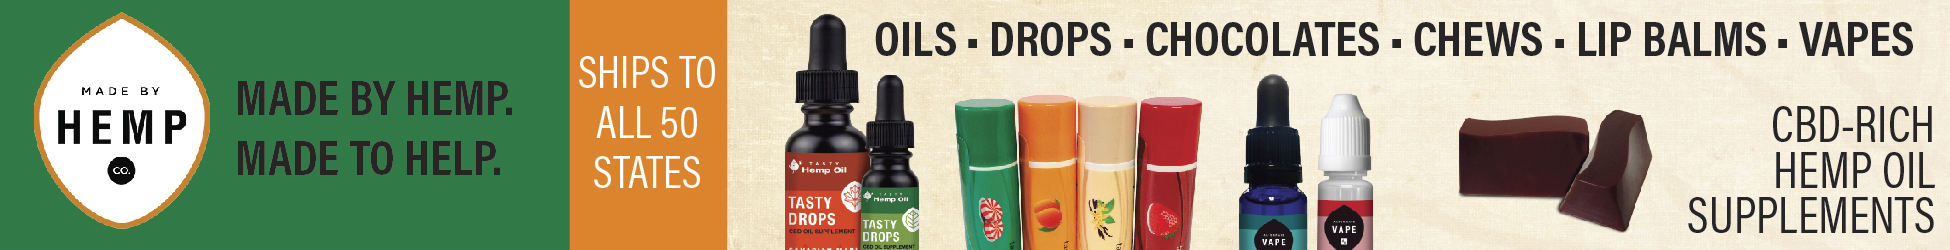 hemp oil products